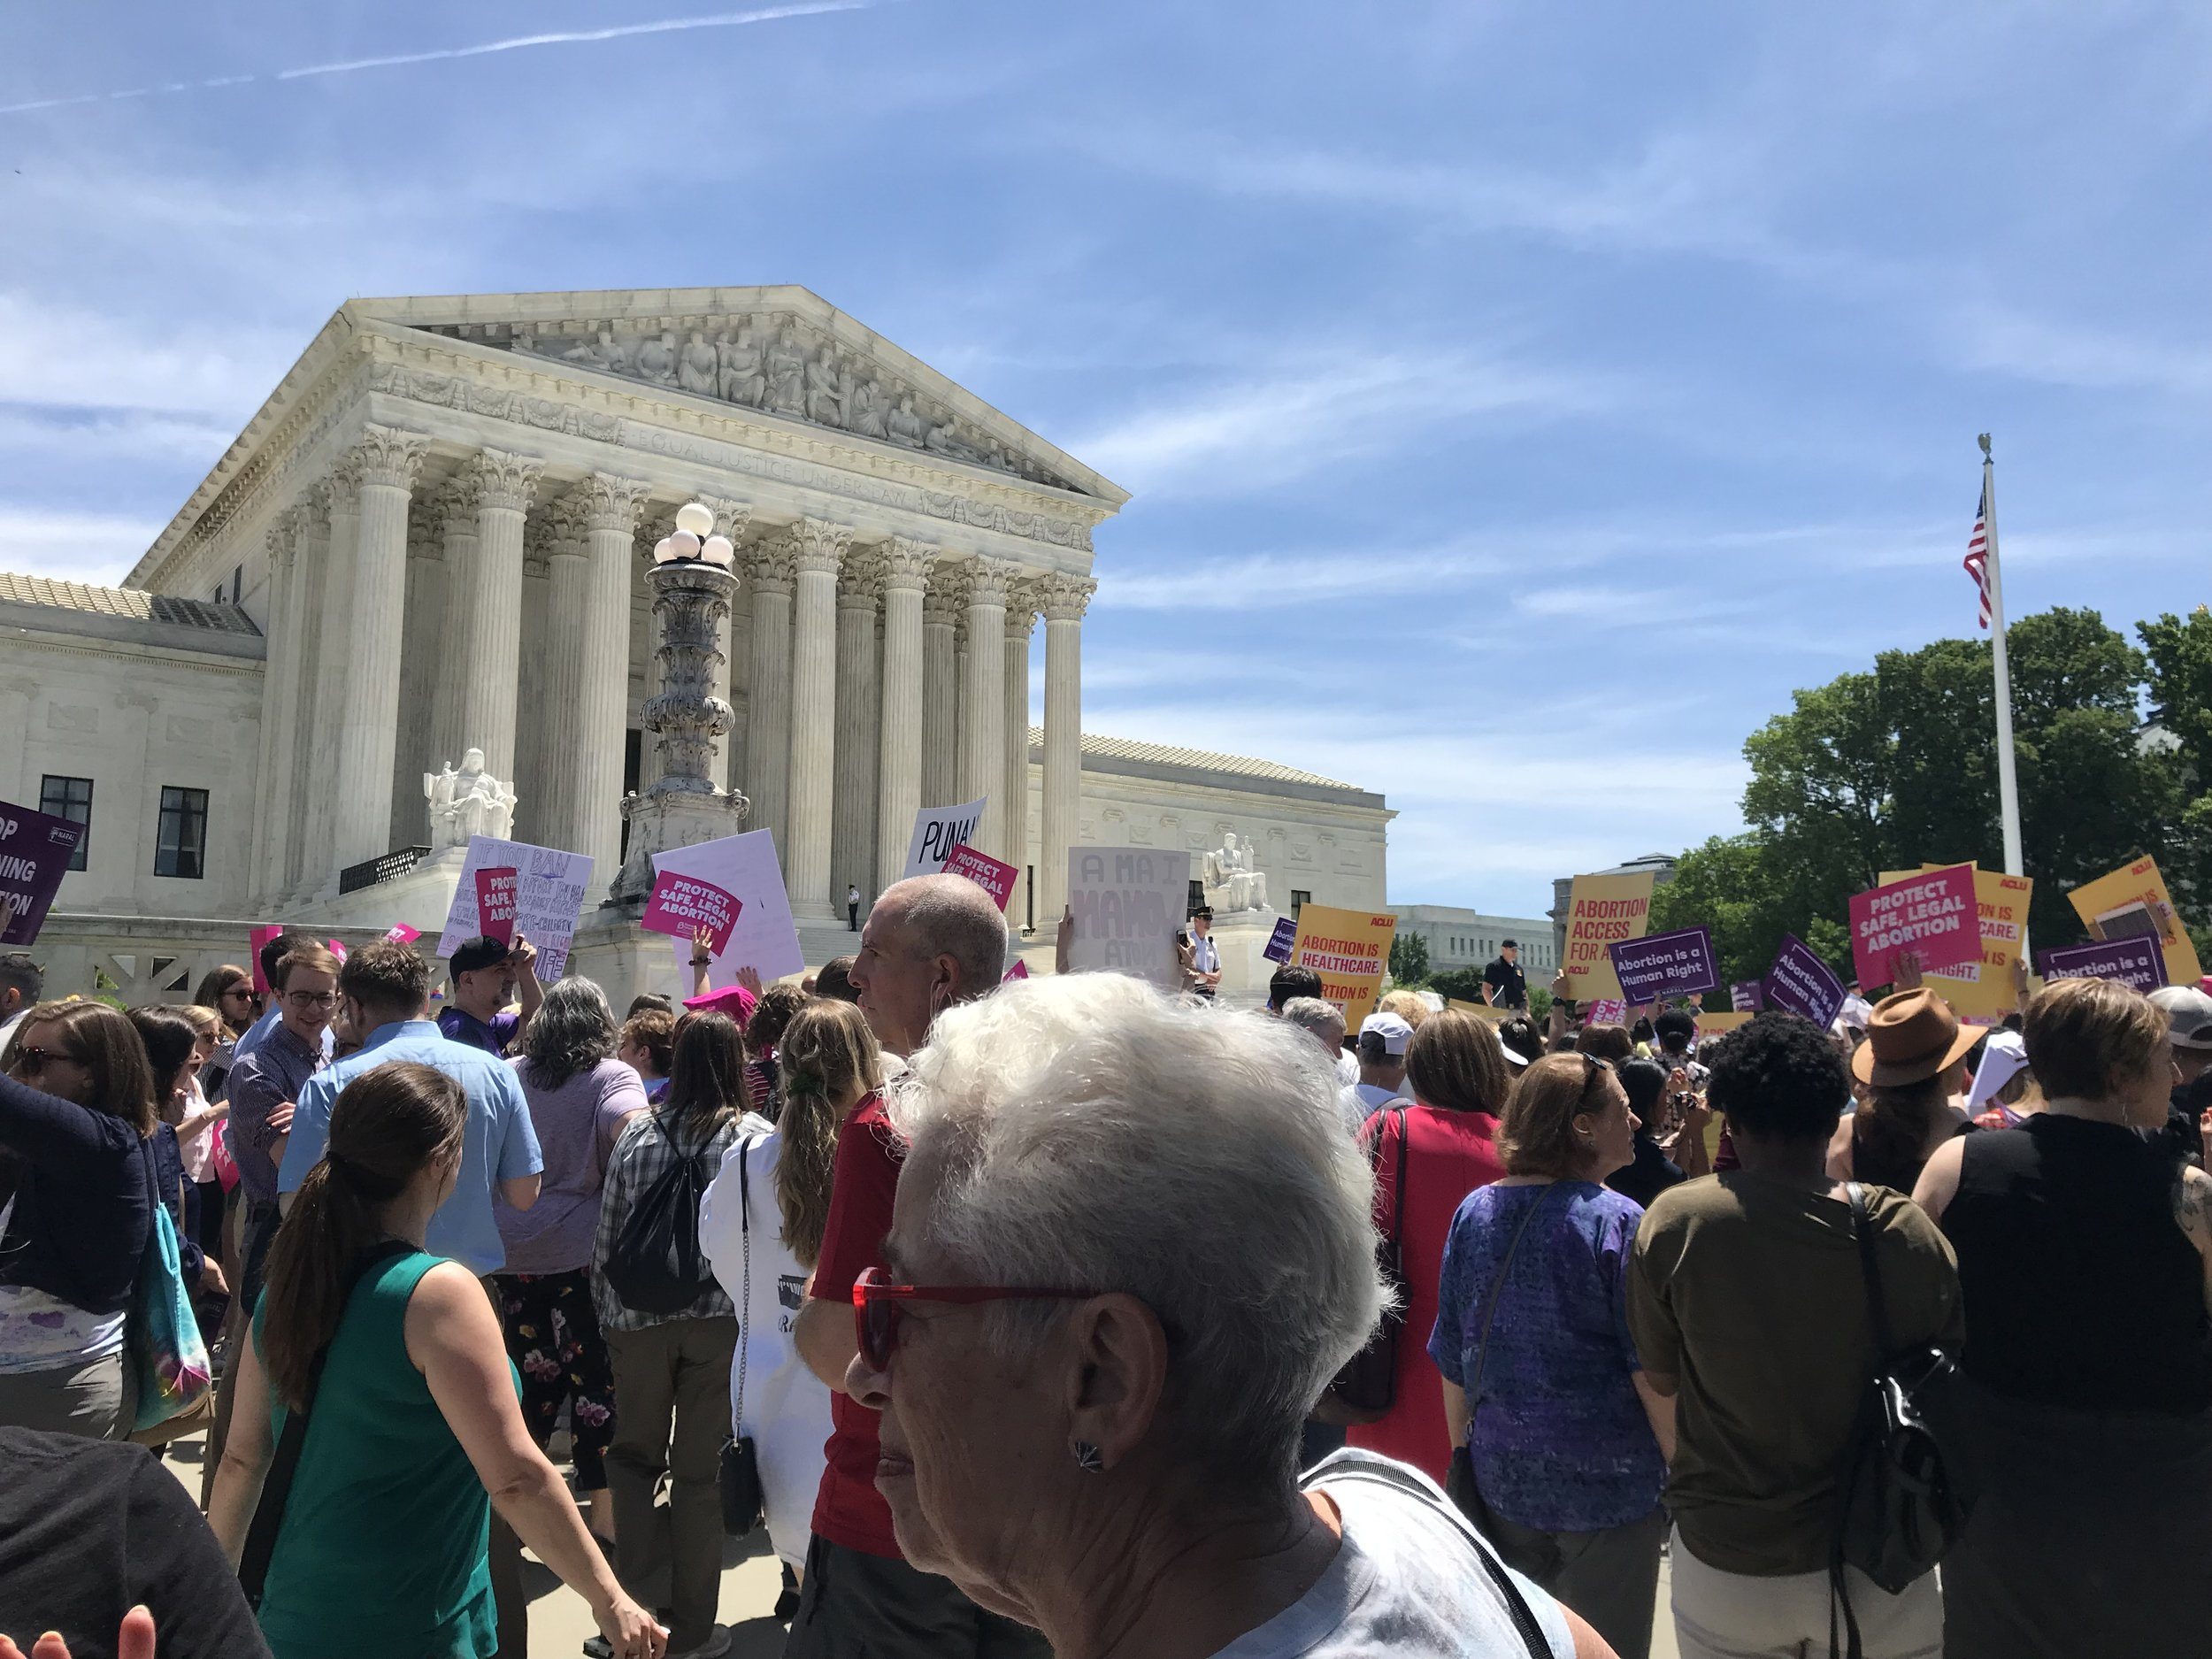 NOPEsters attend the pro-abortion rally in front of the Supreme Court. (May 2019)